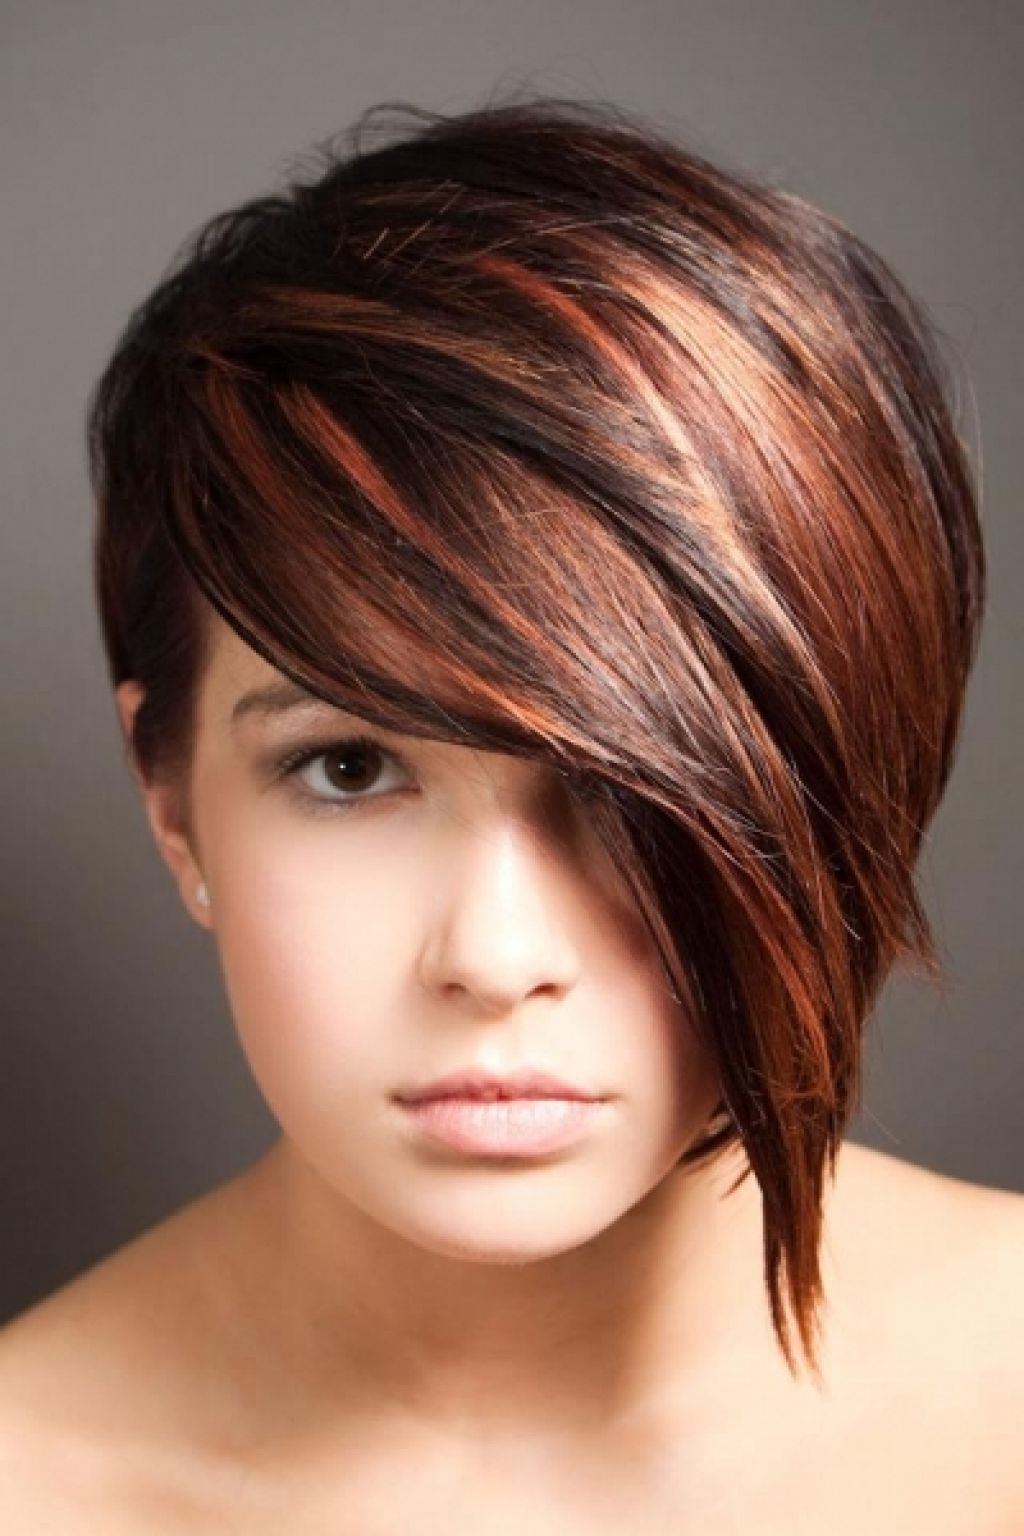 Beautiful Pixie Hairstyle With Long Wavy Fringe In Newest Pixie Hairstyles With Long Fringe (View 7 of 15)